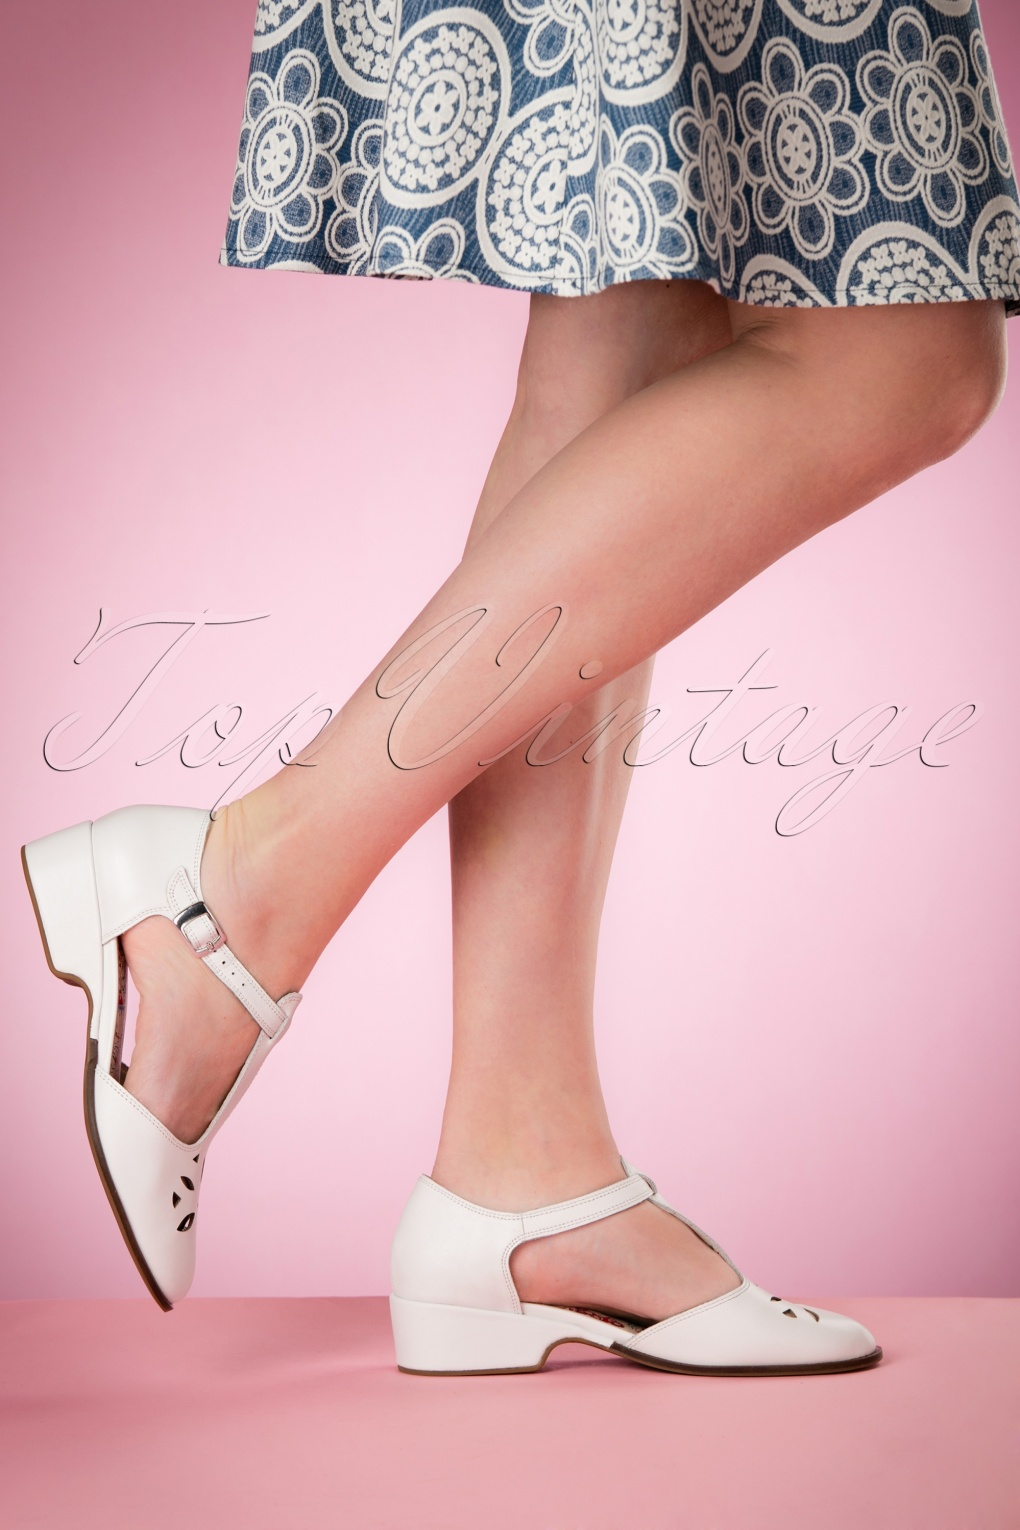 Vintage Style Shoes, Vintage Inspired Shoes 50s Daisy T-Bar Sandals in White £114.48 AT vintagedancer.com